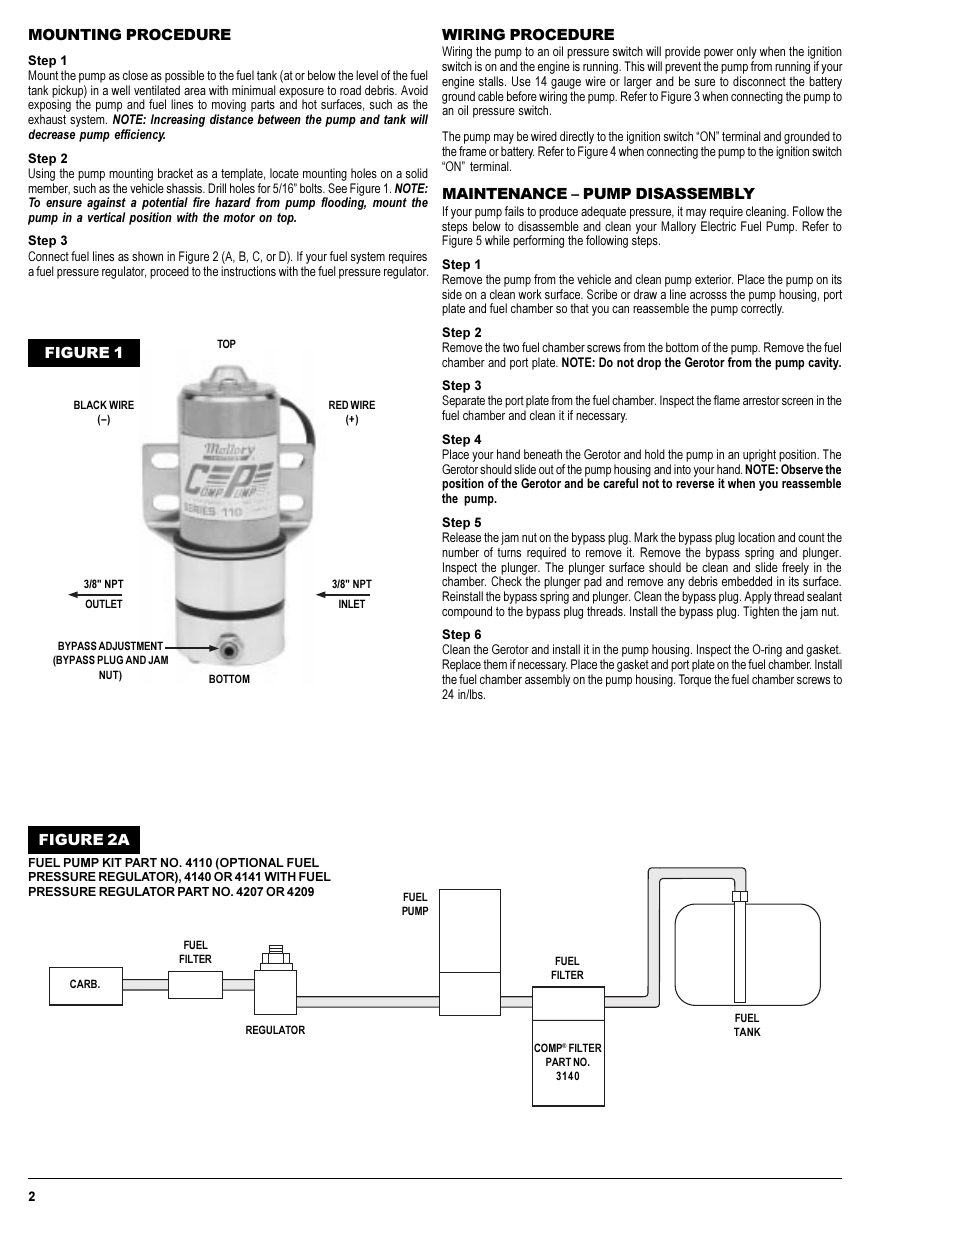 mallory ignition mallory comp pump series 110 and 140 electric fuel rh manualsdir com Nissan Fuel Pump Wiring Diagram Nissan Fuel Pump Wiring Diagram